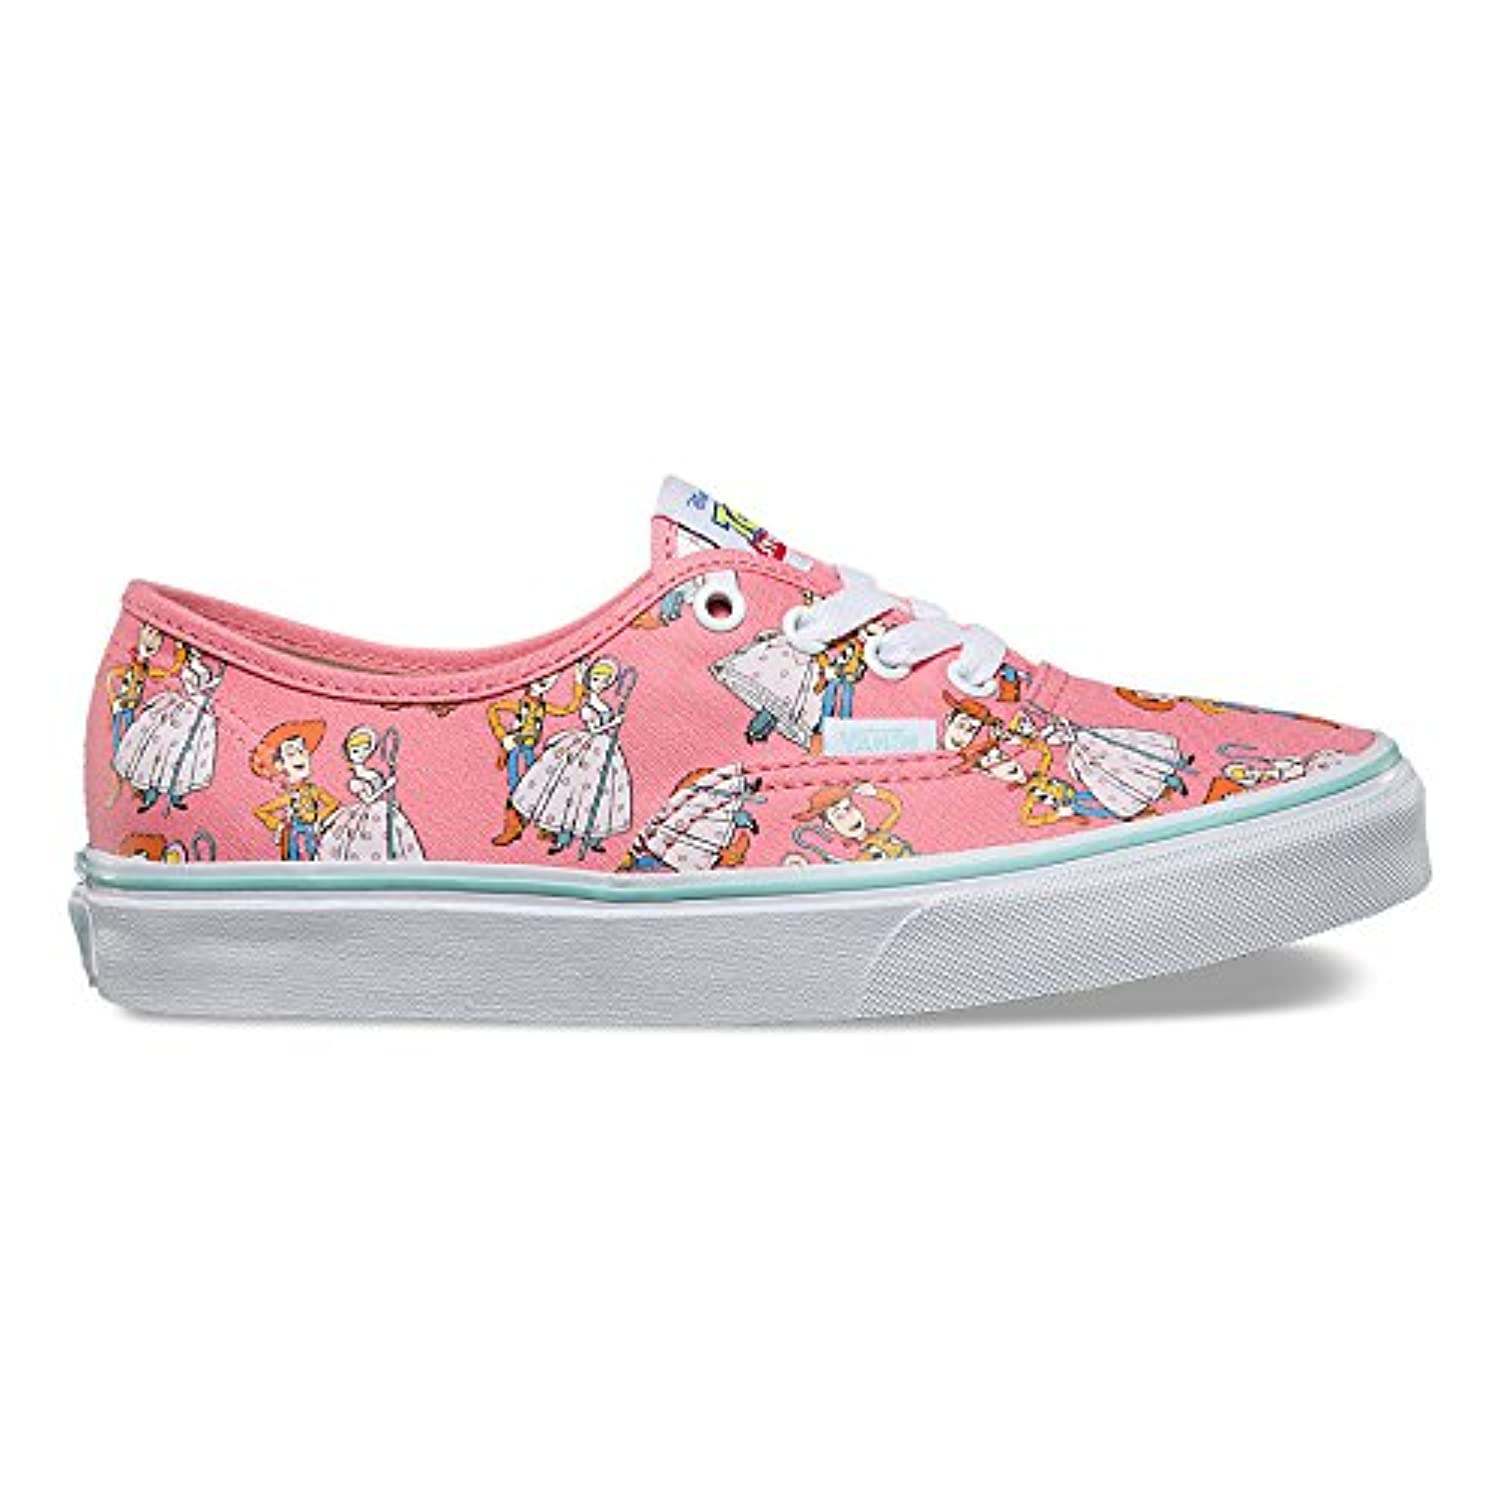 Vans Unisex Kids' Authentic Low-Top Sneakers, Multicolored ((Toy Story)) Woody/Bo Peep)), 1 UK (32 EU)